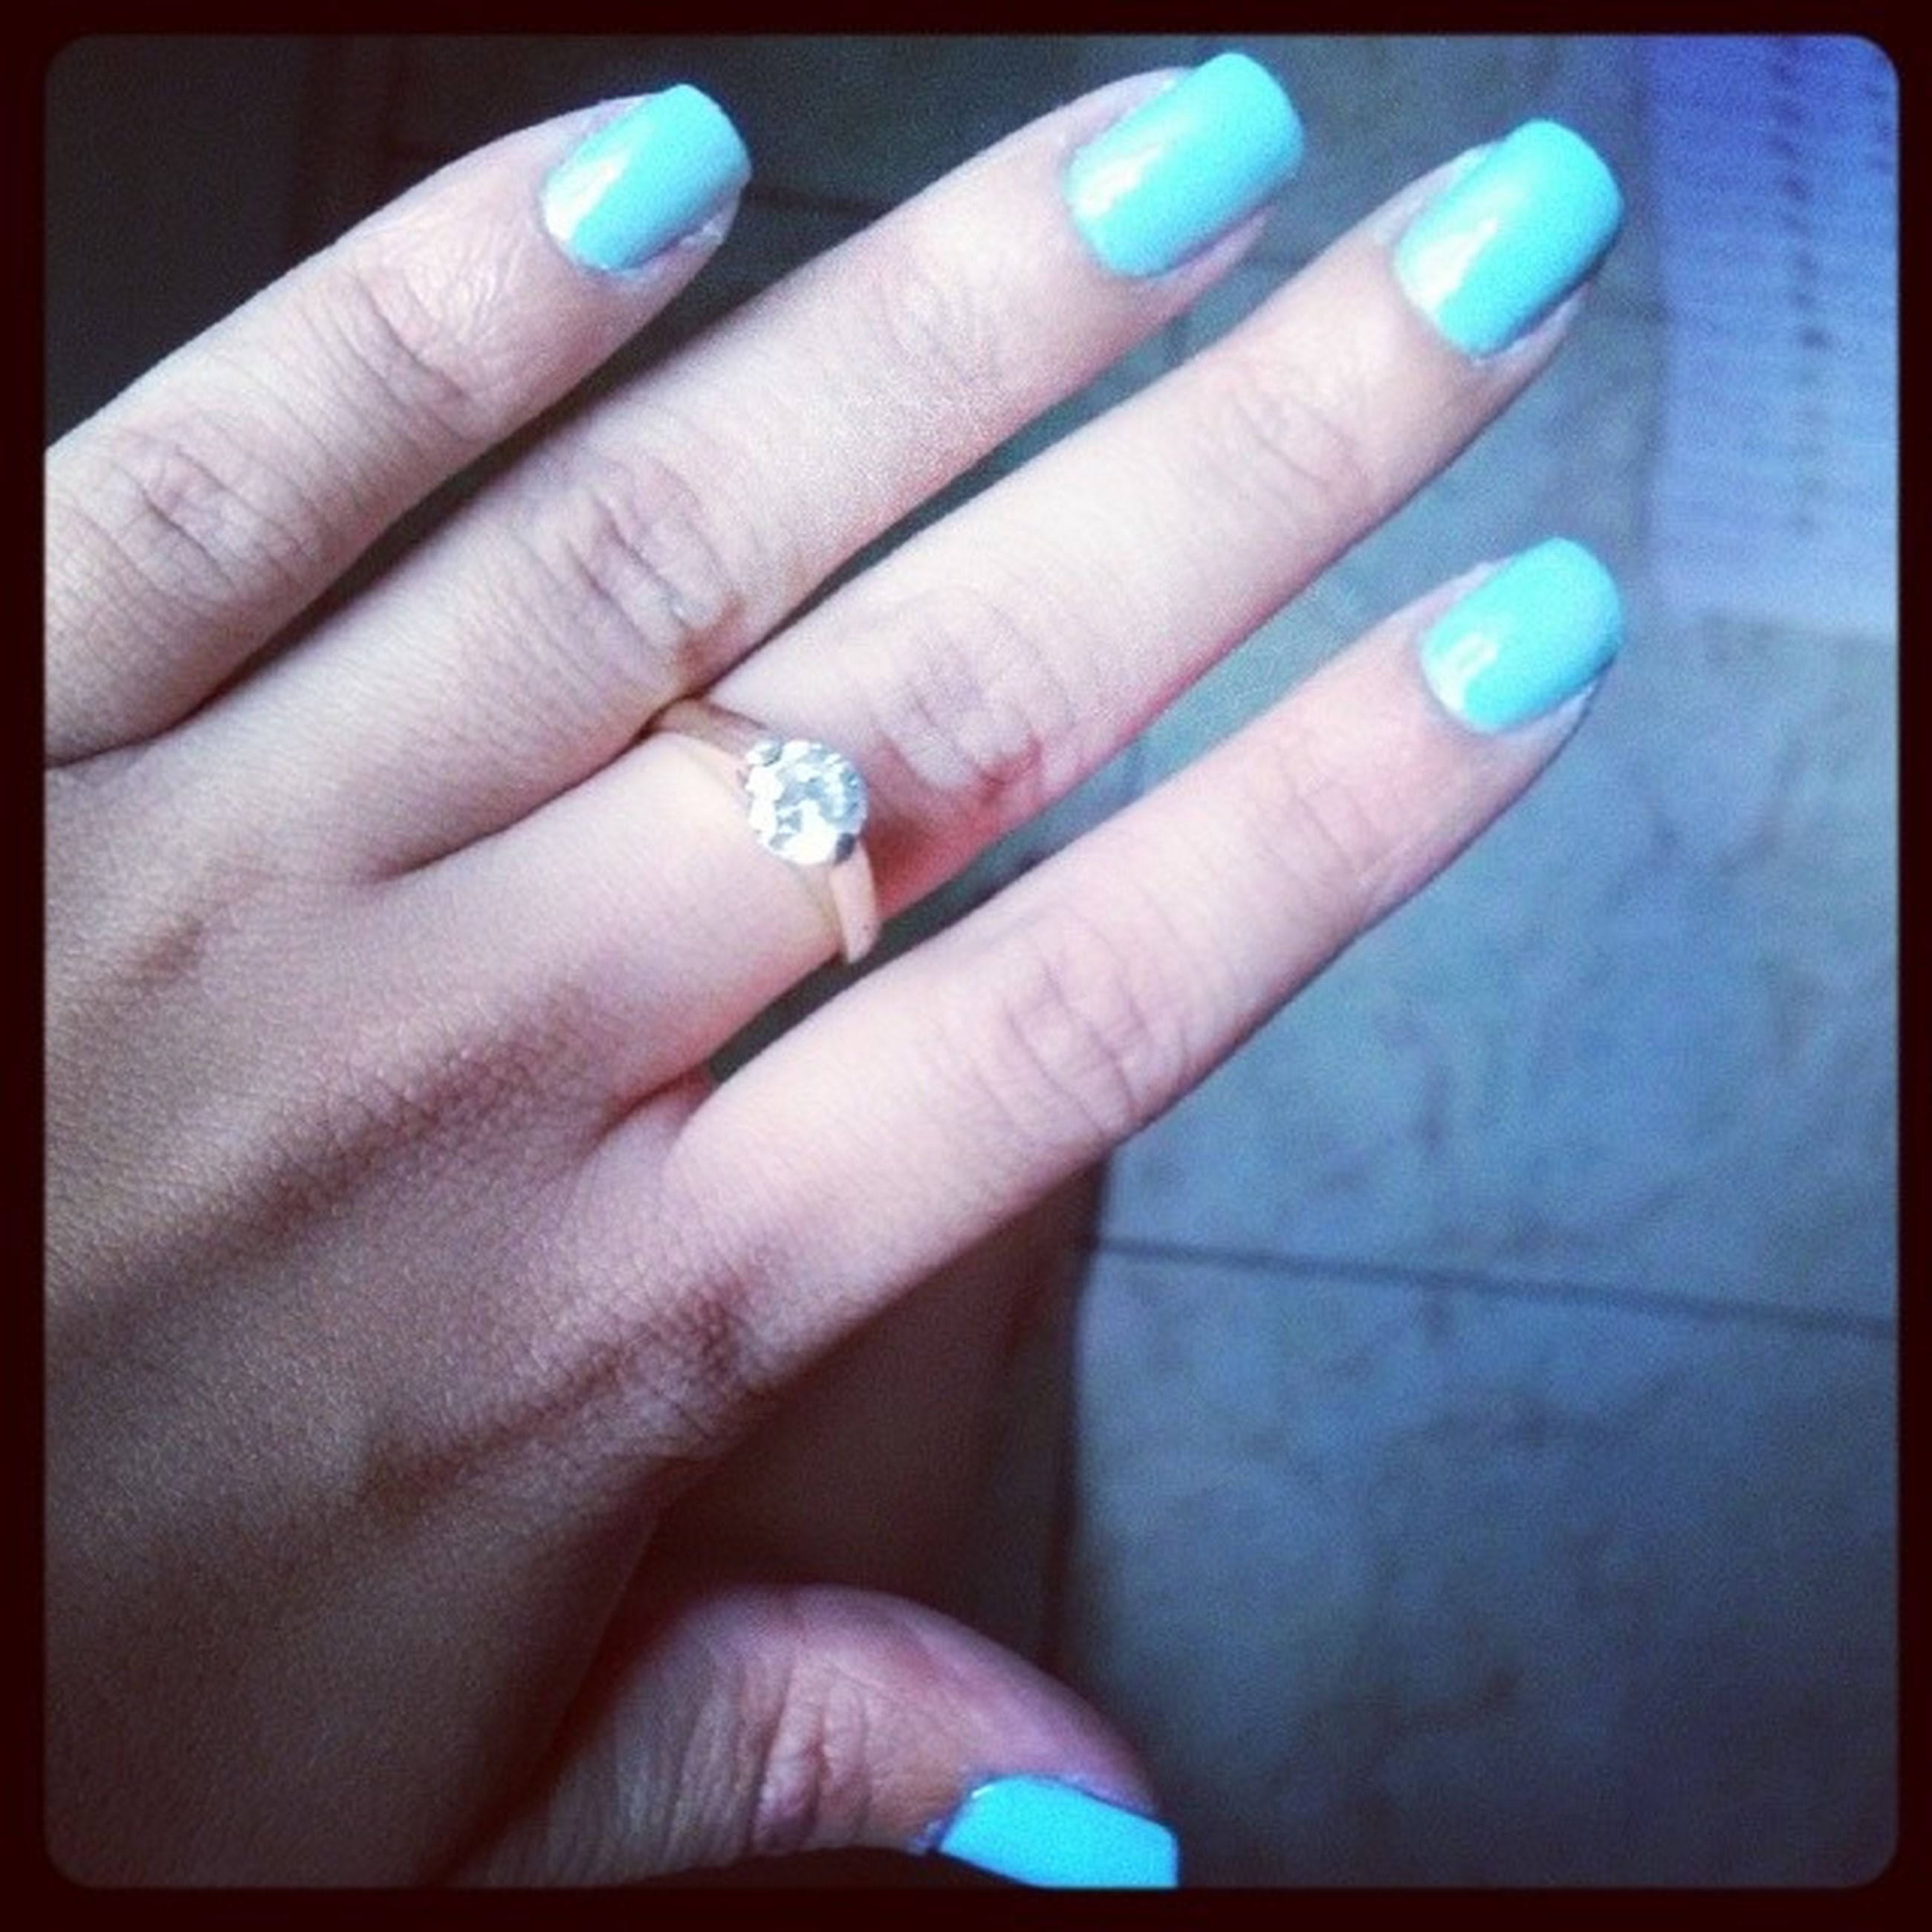 person, part of, human finger, cropped, holding, close-up, personal perspective, unrecognizable person, nail polish, auto post production filter, transfer print, indoors, showing, ring, lifestyles, palm